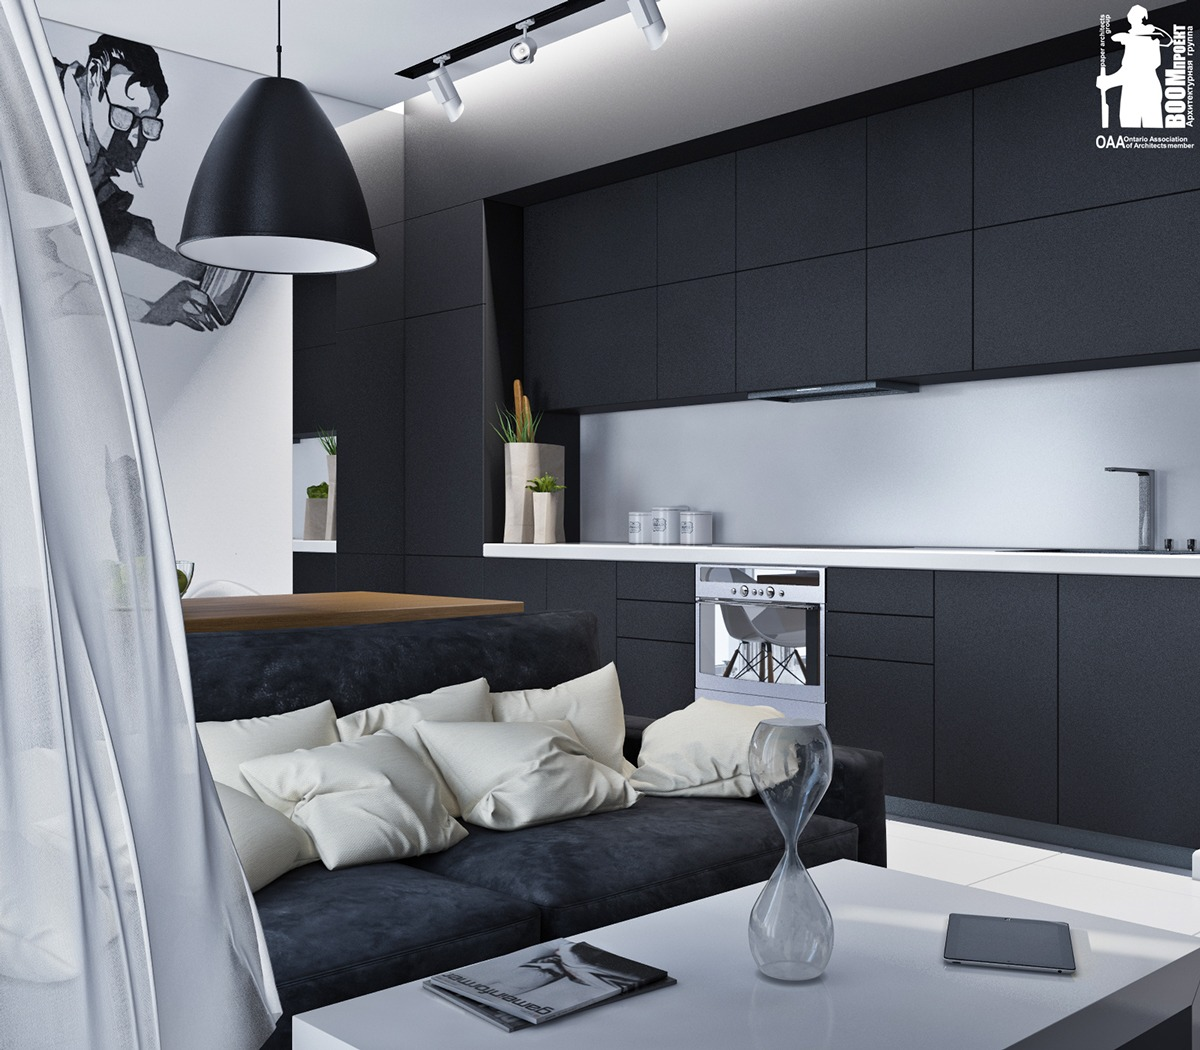 Artistic Apartments With Monochromatic Color Schemes